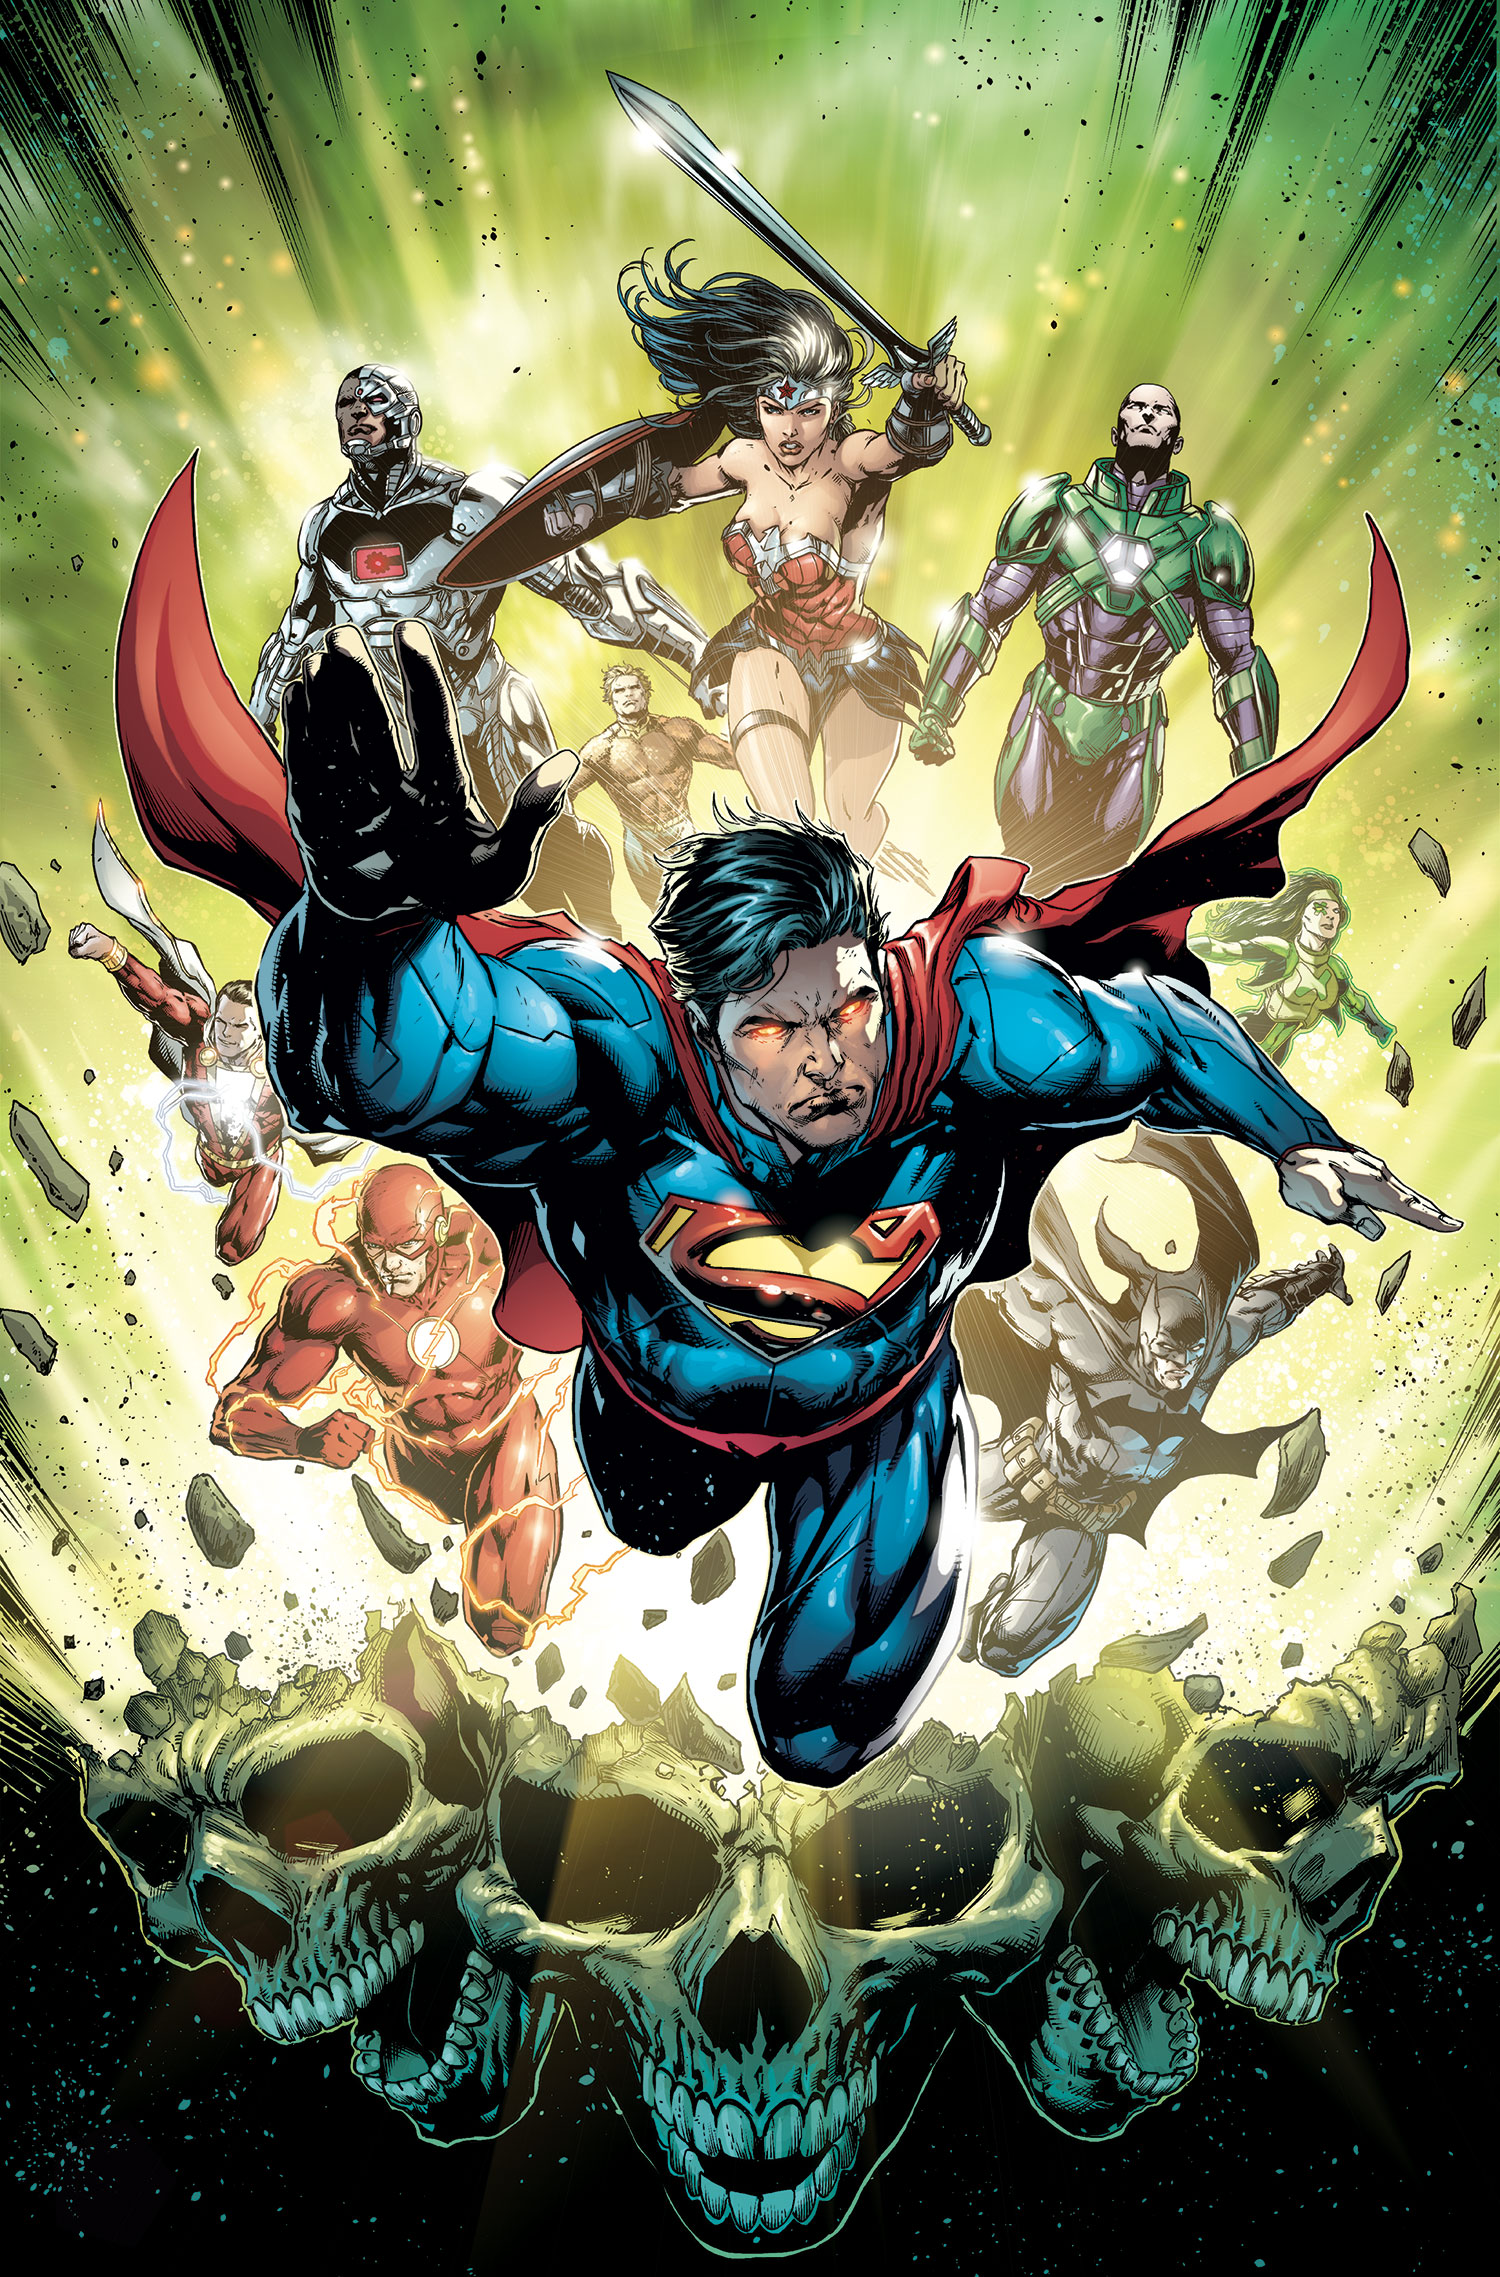 Justice League Vol 2 39 Textless.jpg